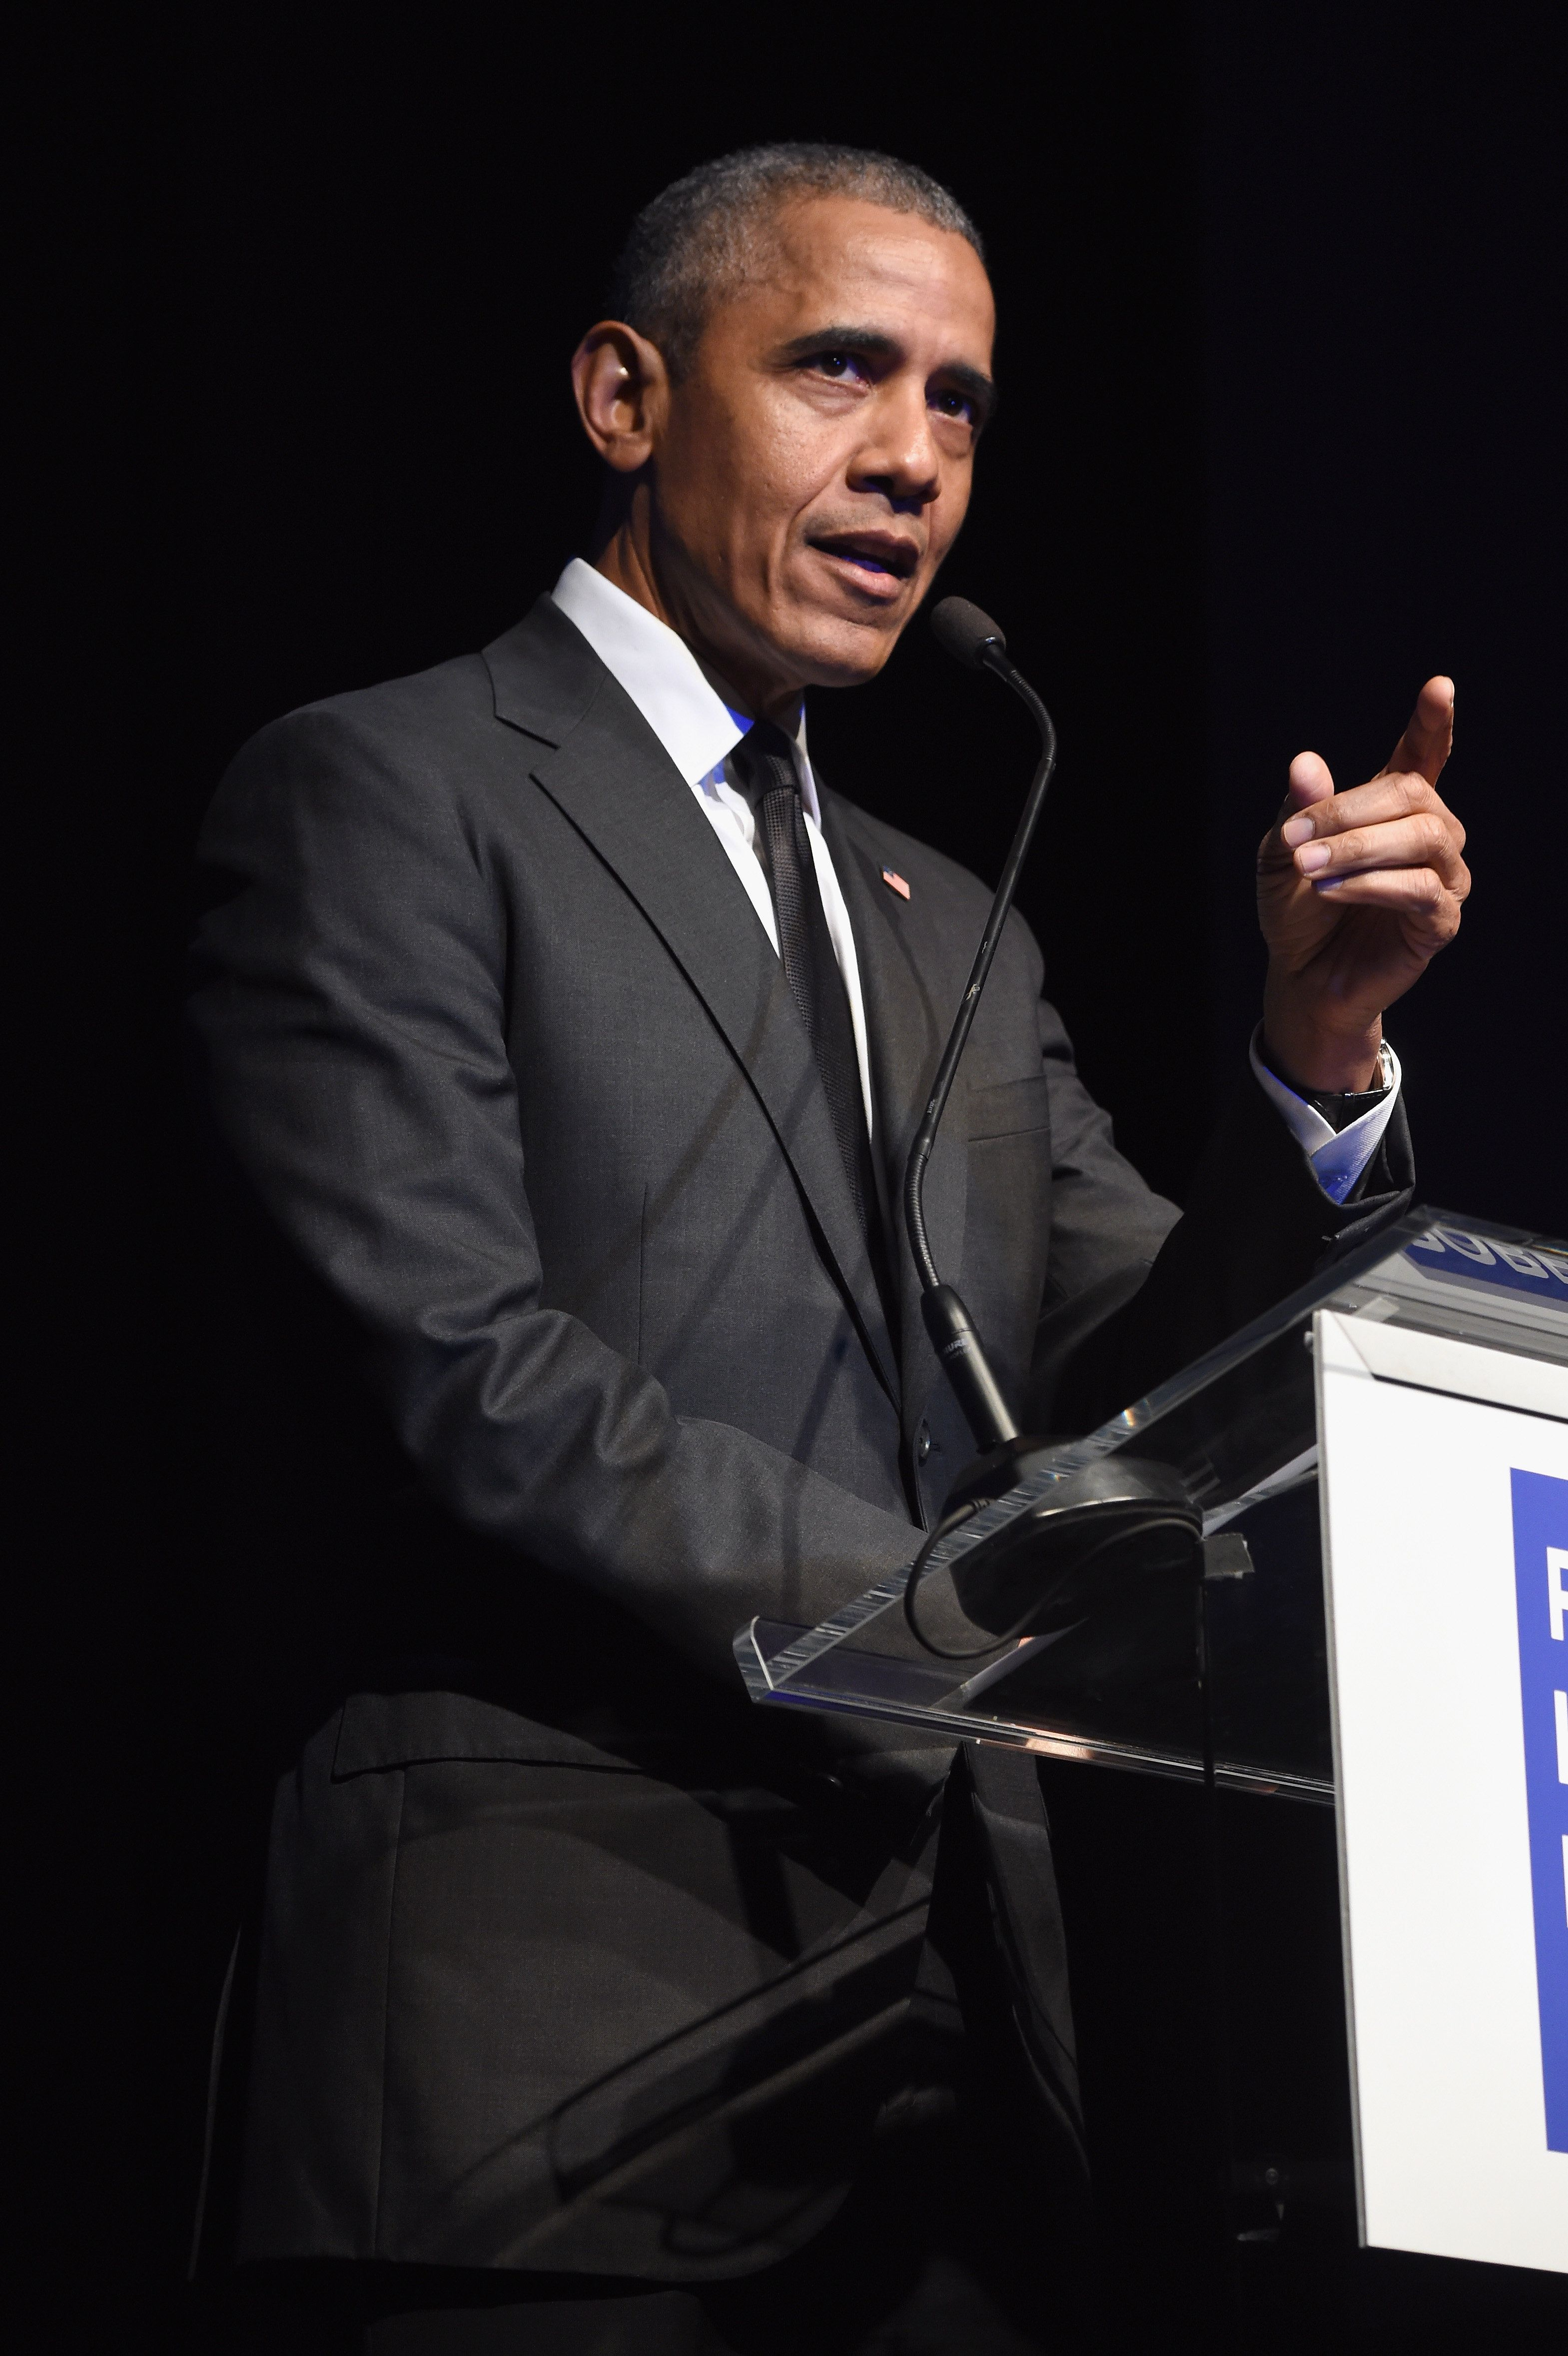 NEW YORK, NY - DECEMBER 12:  Former President Barack Obama speaks onstage during the 2019 Robert F. Kennedy Human Rights Ripple Of Hope Awards on December 12, 2018 in New York City.  (Photo by Kevin Mazur/Getty Images  for  Robert F. Kennedy Human Rights )